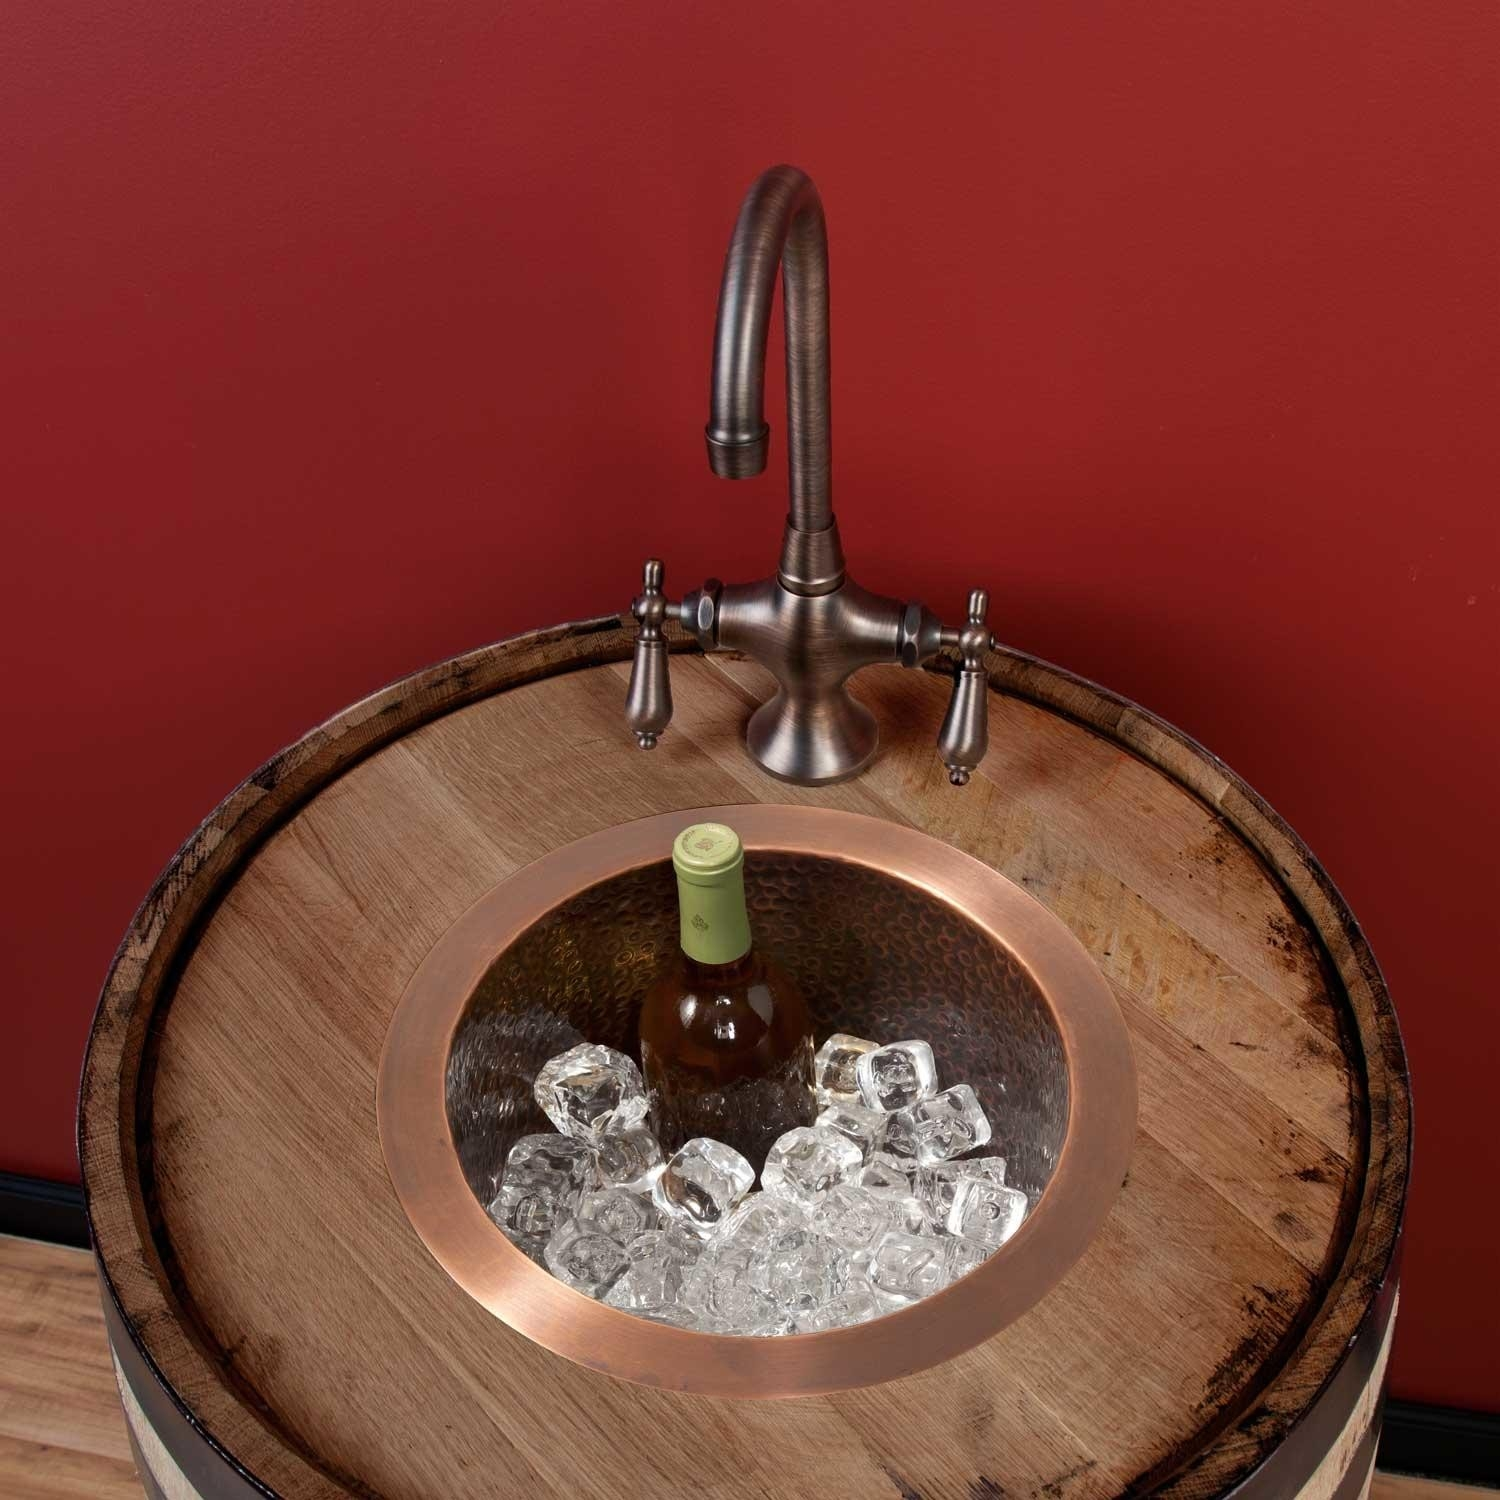 Ideas, copper bar sink and faucet copper bar sink and faucet bar sinks prep sinks signature hardware 1500 x 1500  .